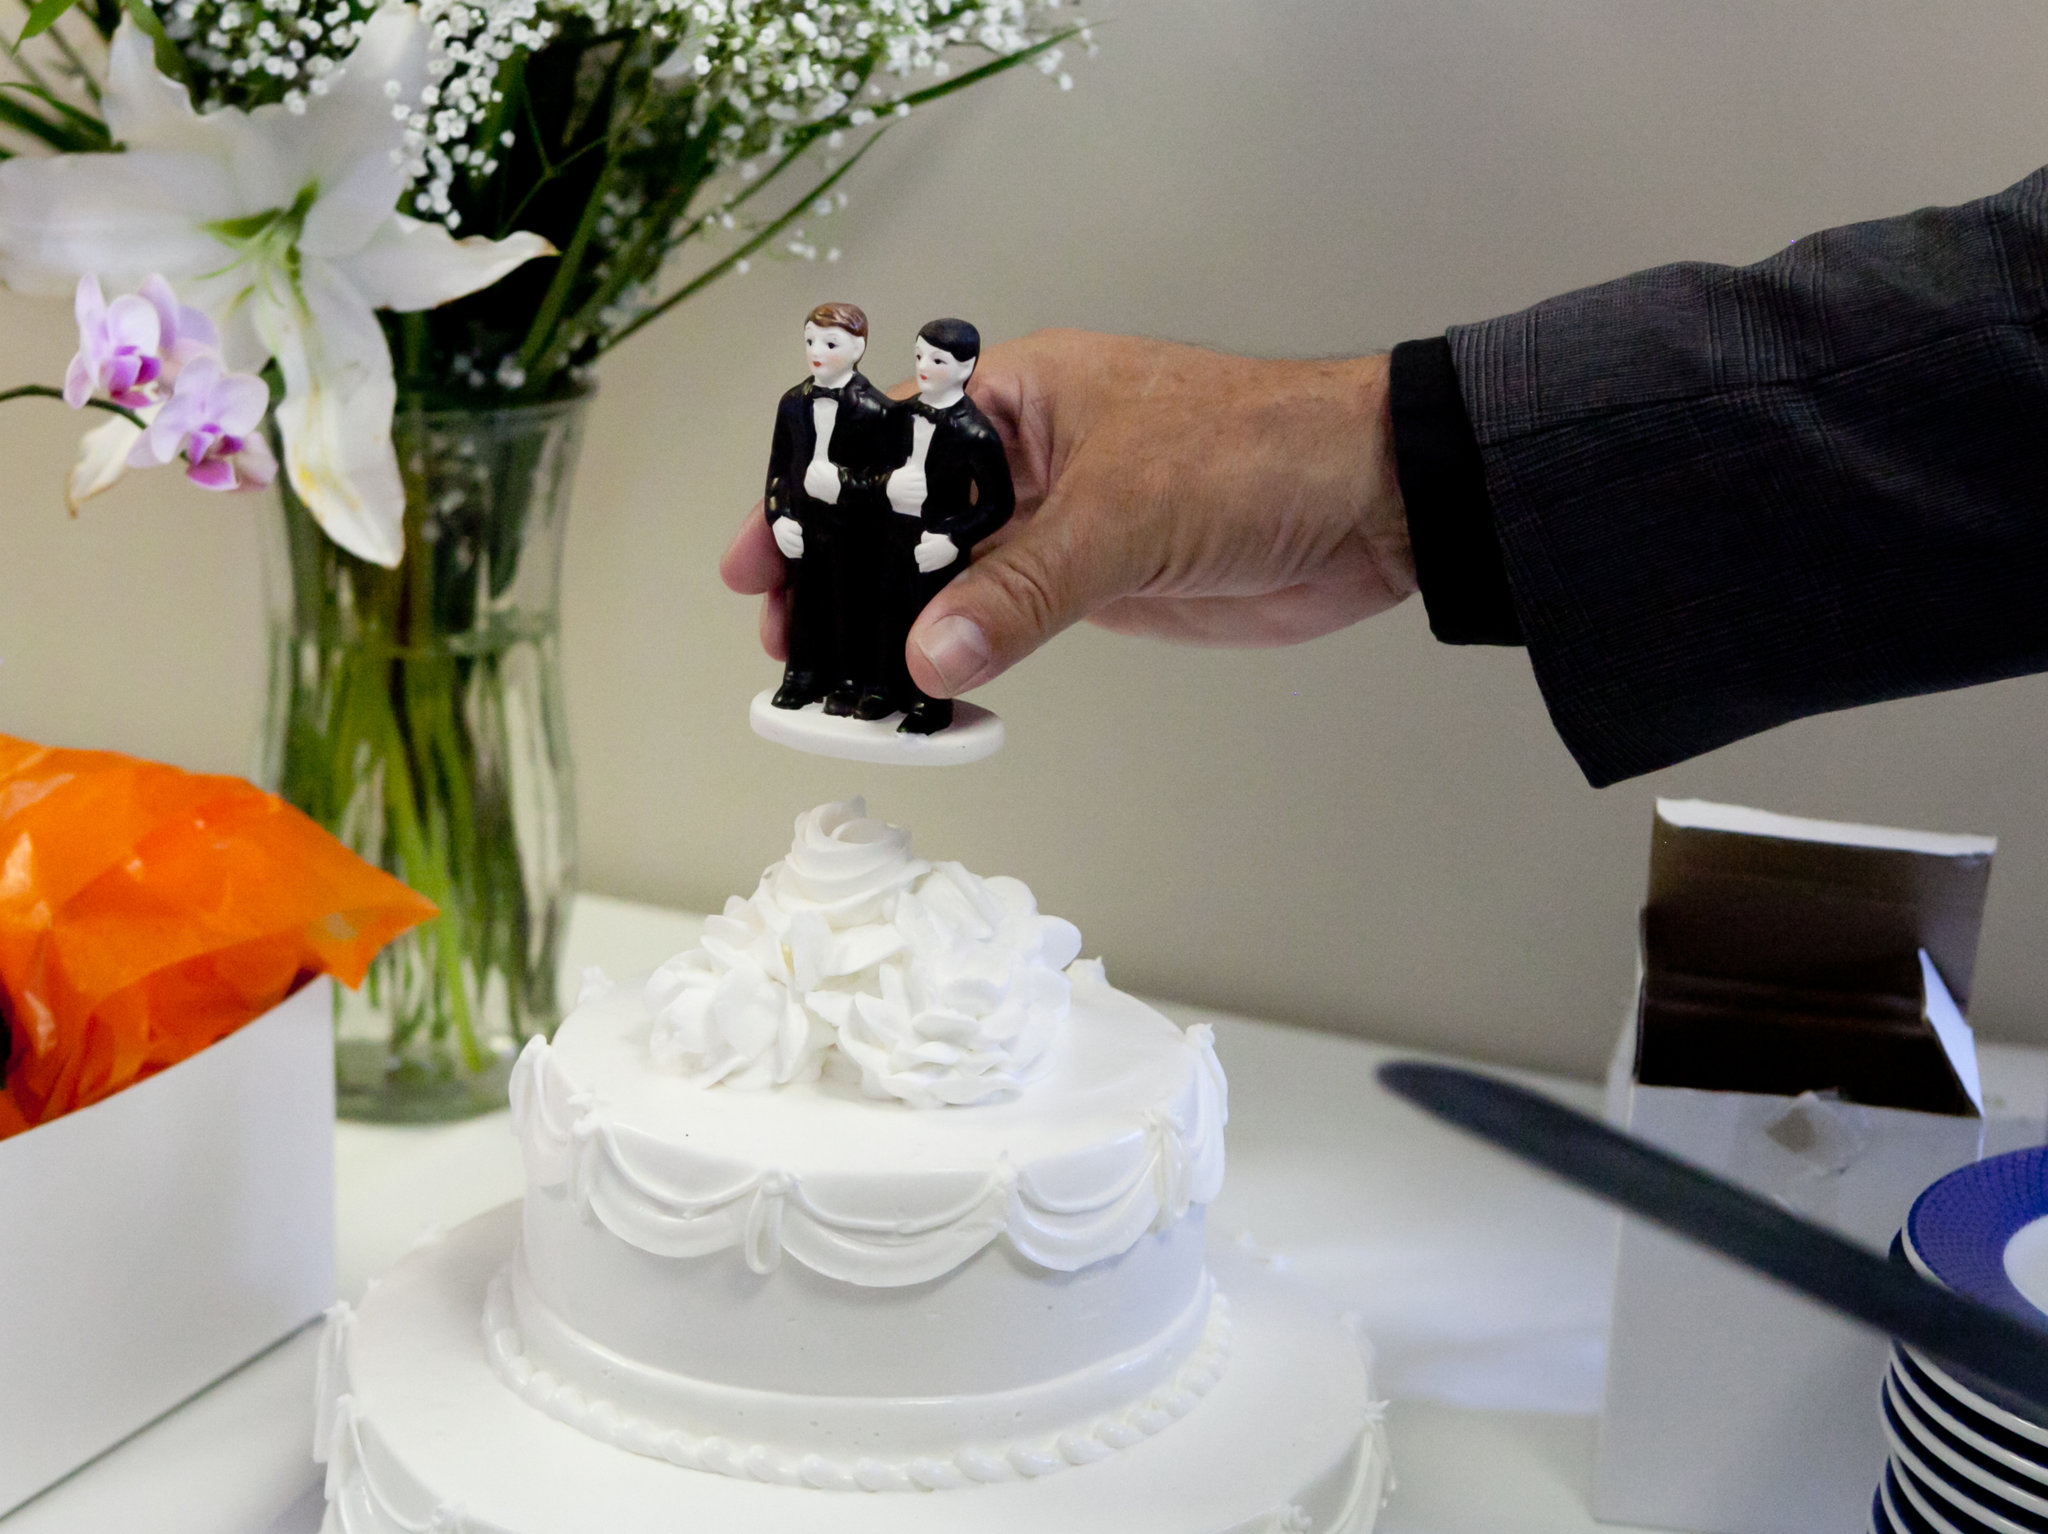 Wedding cake with two dolls of men